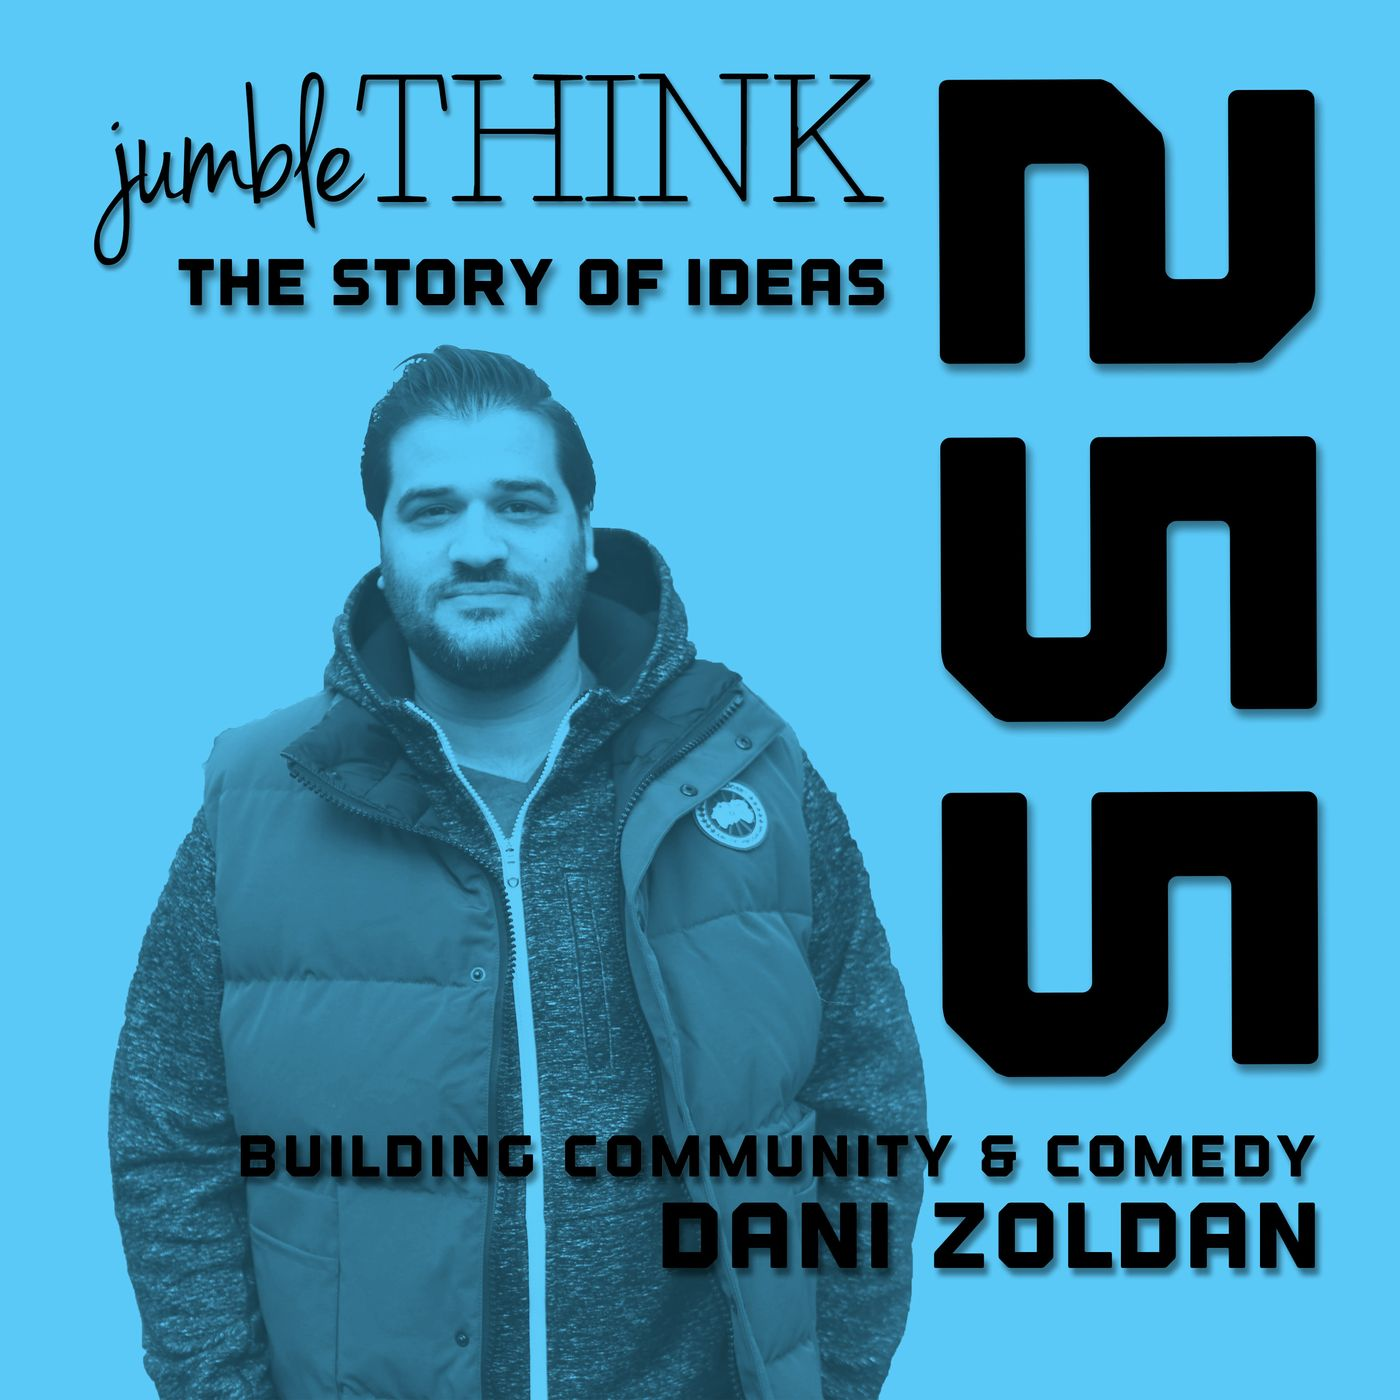 Building Community & Comedy with Dani Zoldan